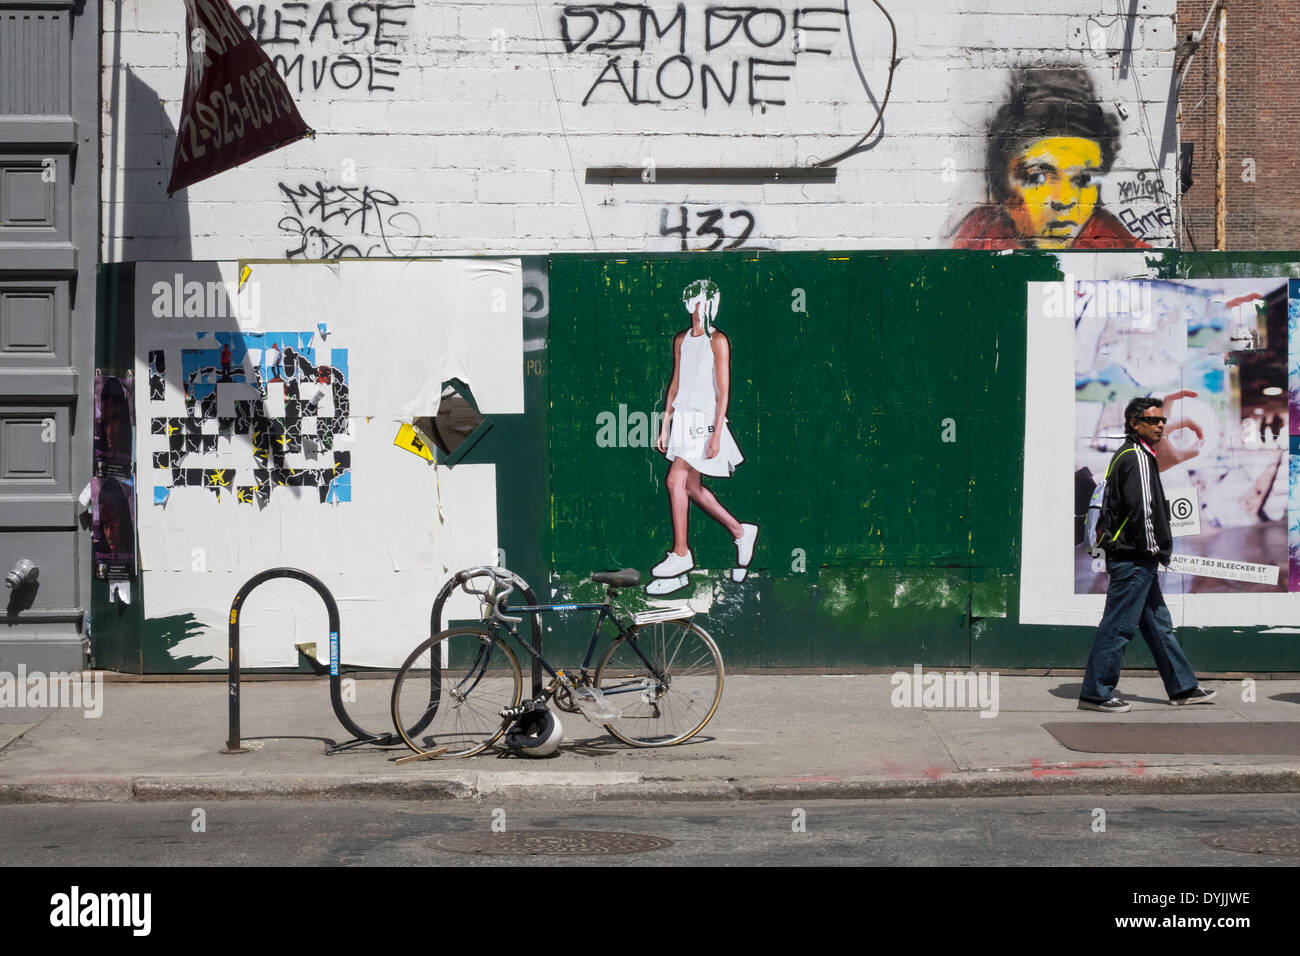 Graffiti and faded poster ads in New York City - Stock Image